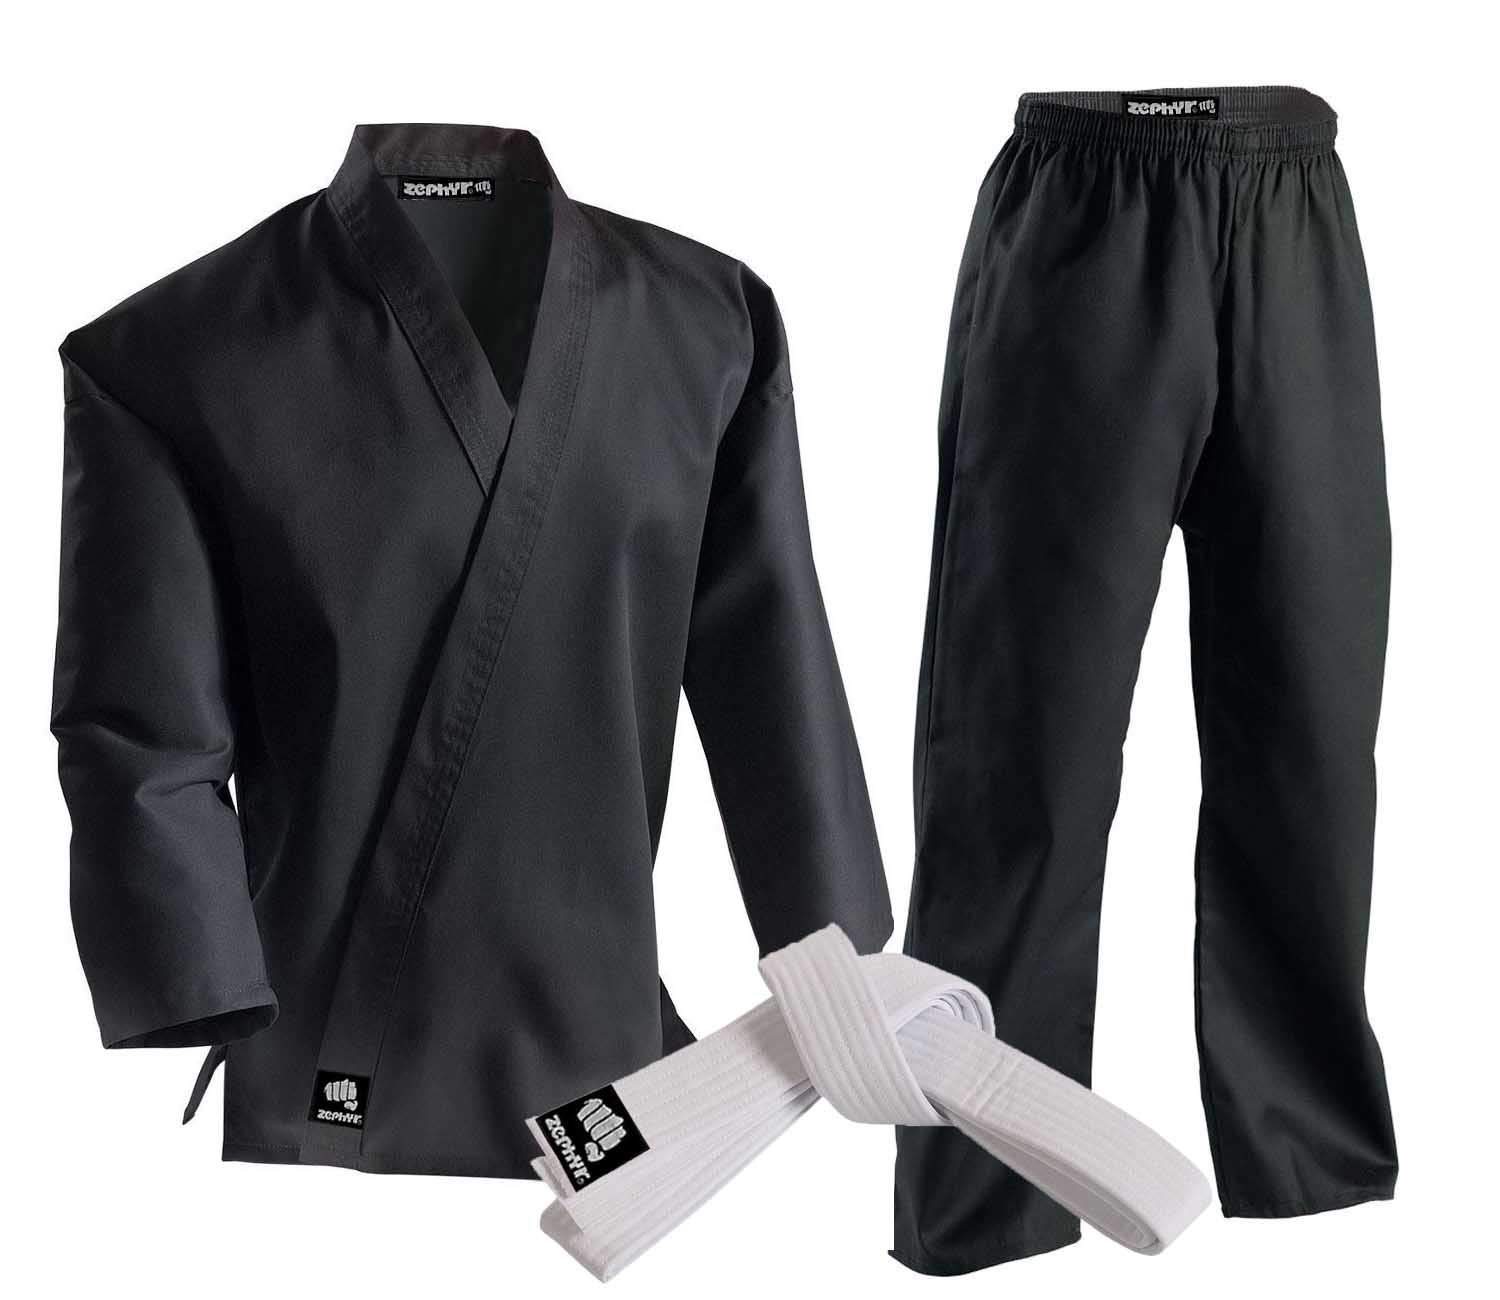 Zephyr Martial Arts 7.5 oz. Karate Gi Student Uniform with Belt - Black - 4 by Zephyr Tactical